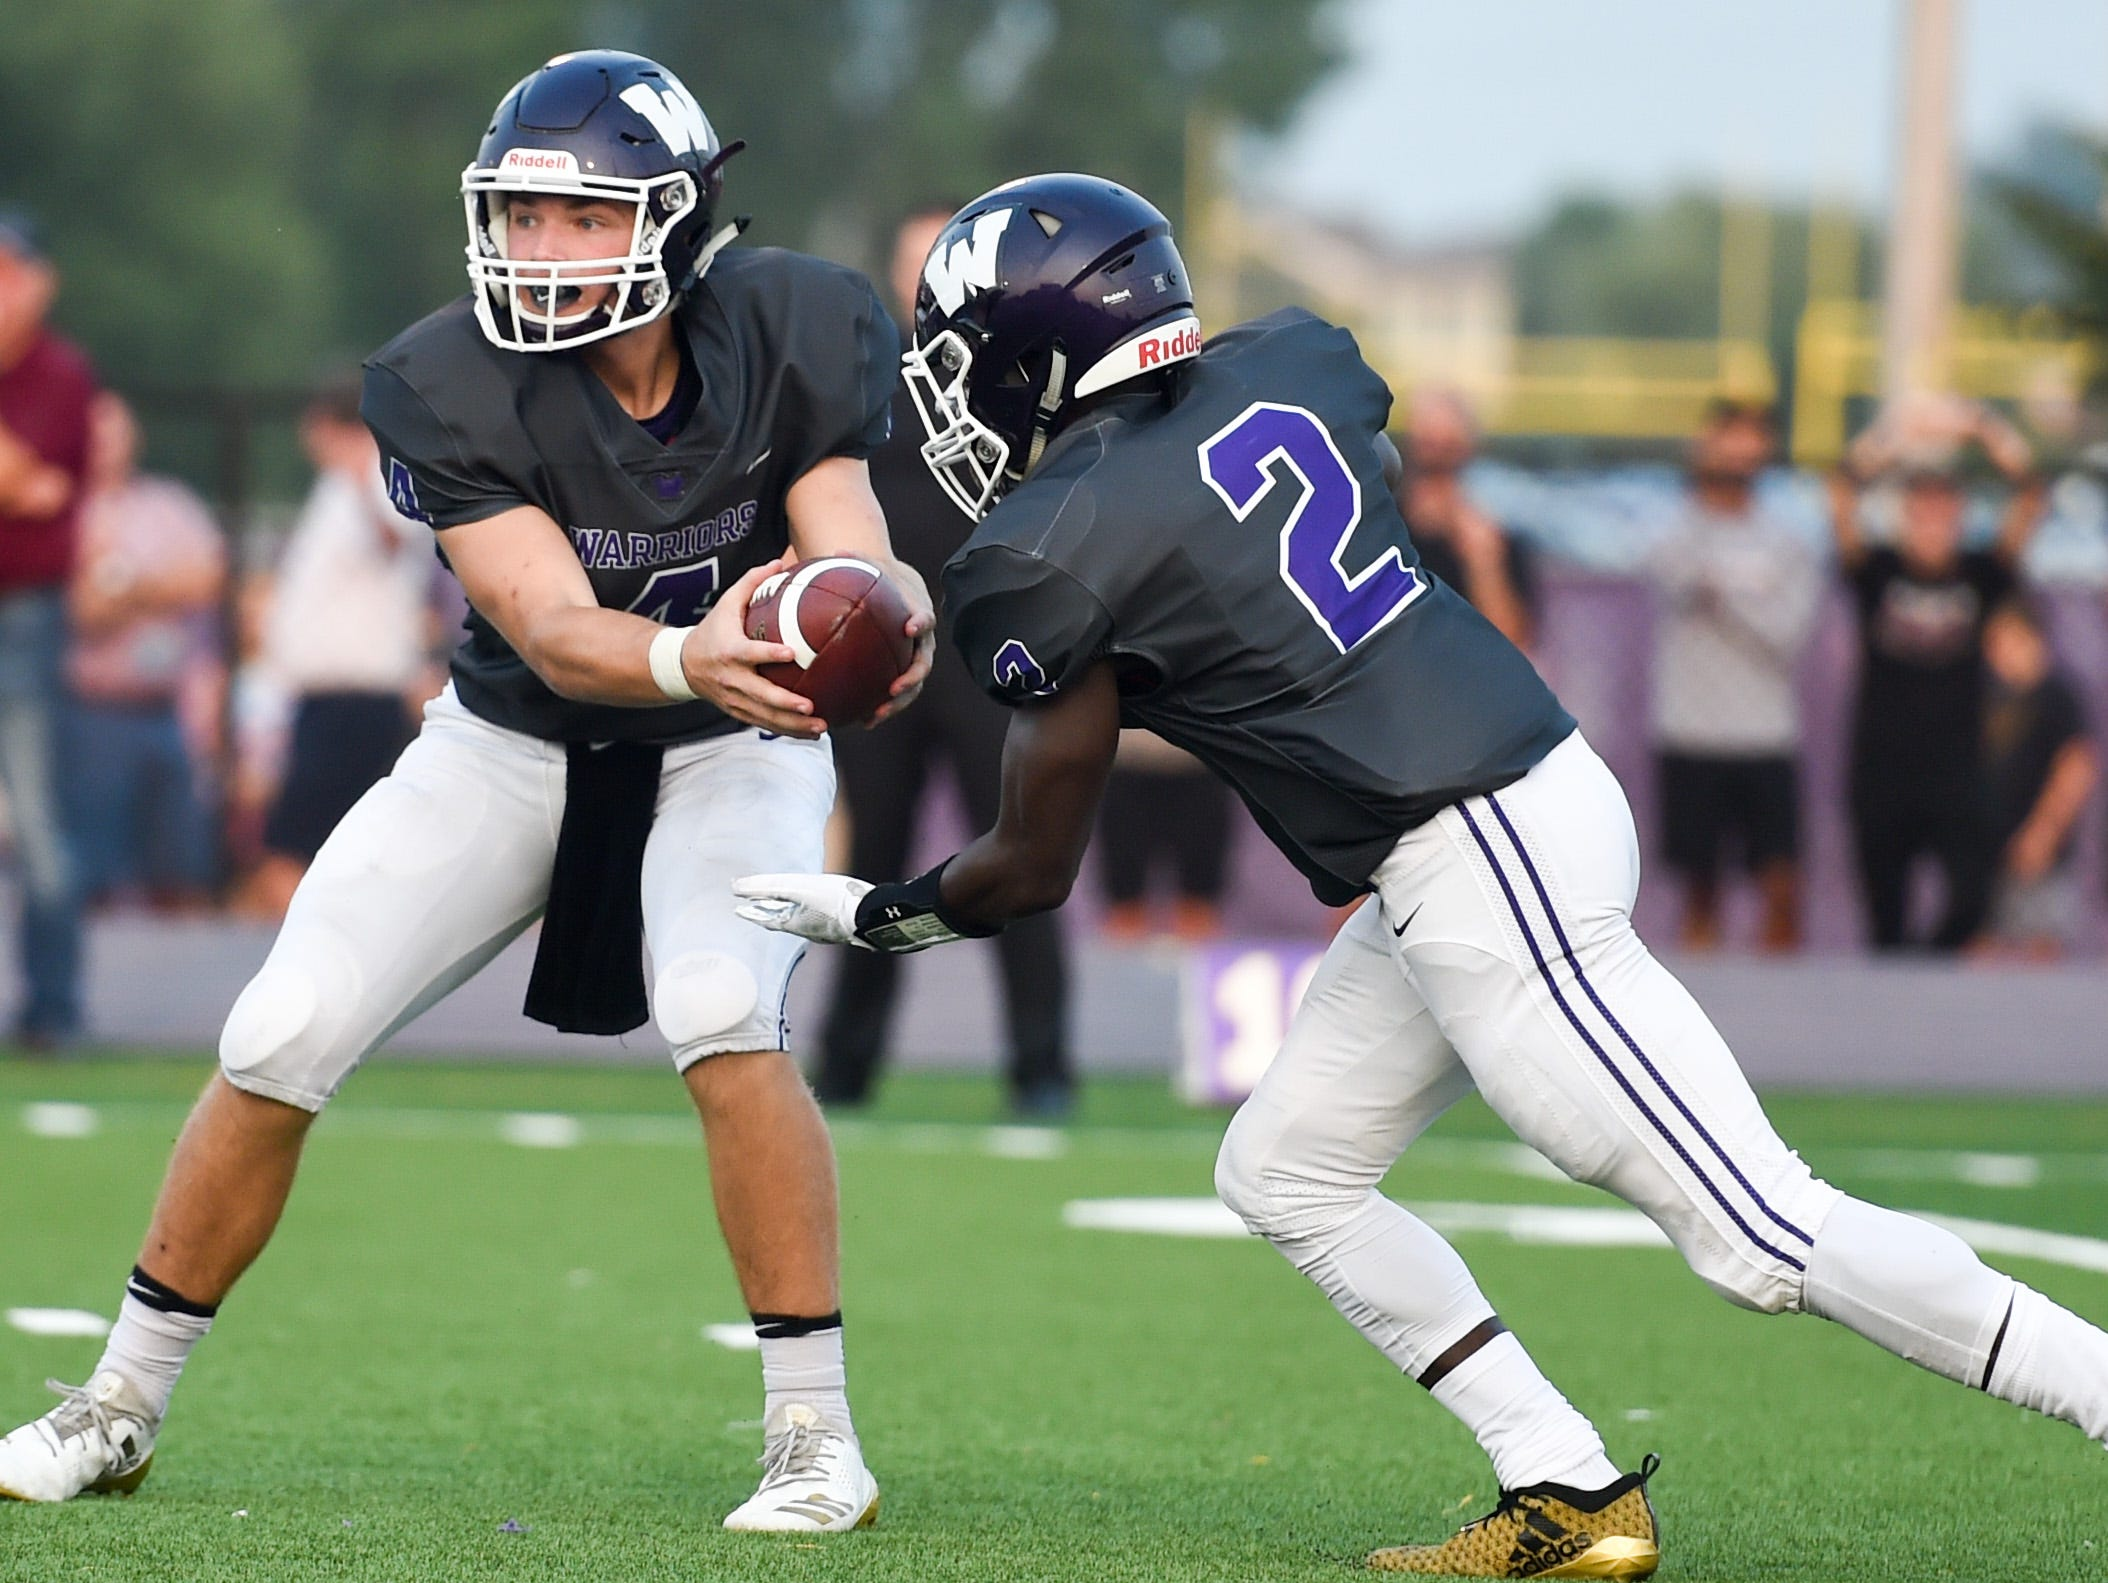 Waukee's Mitch Randall (4) hands off to Sam Yeaway (2) on Friday, Aug. 24, 2018 during a game between the Waukee Warriors and the Dowling Catholic Maroons at Waukee High School.